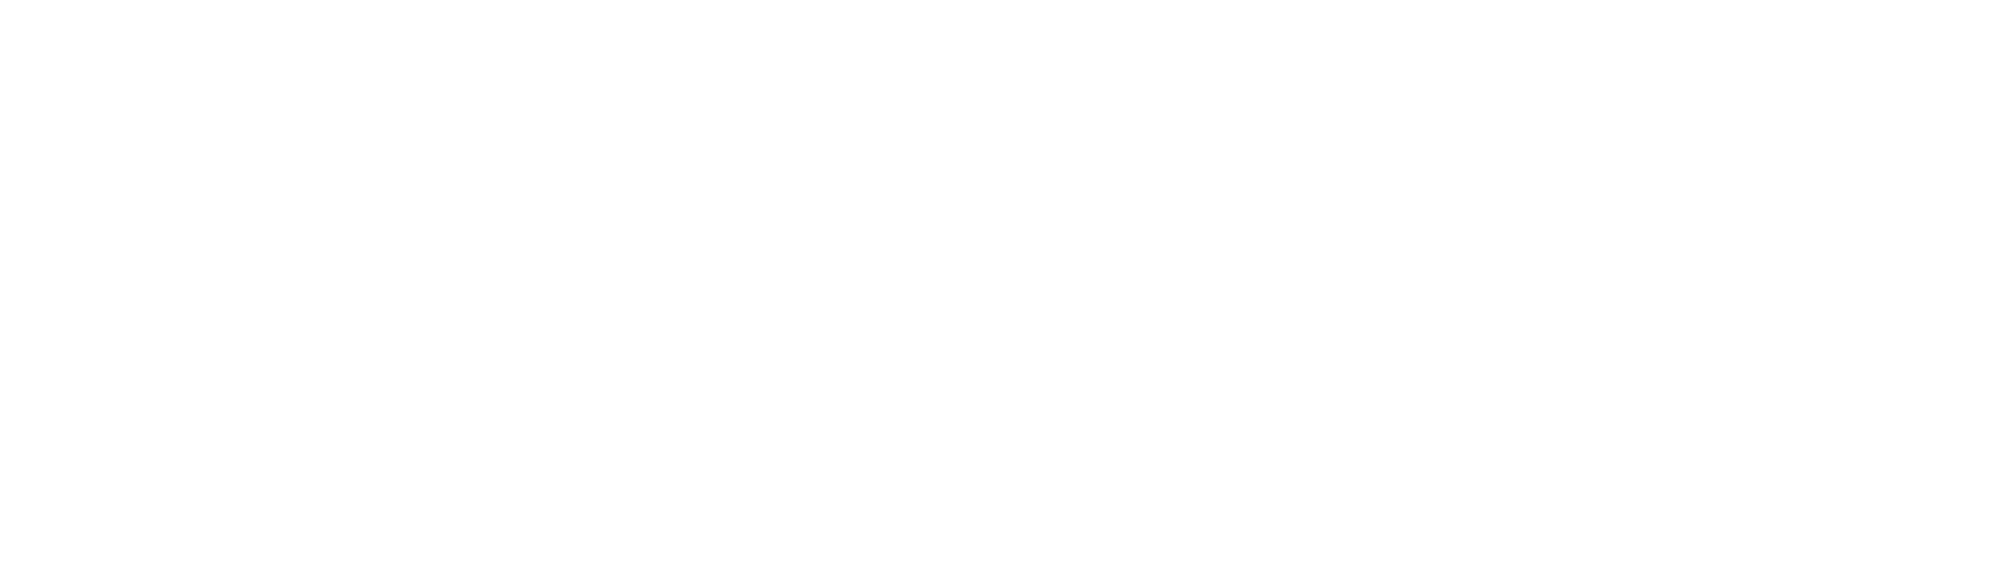 we care, we deliver, we grow.